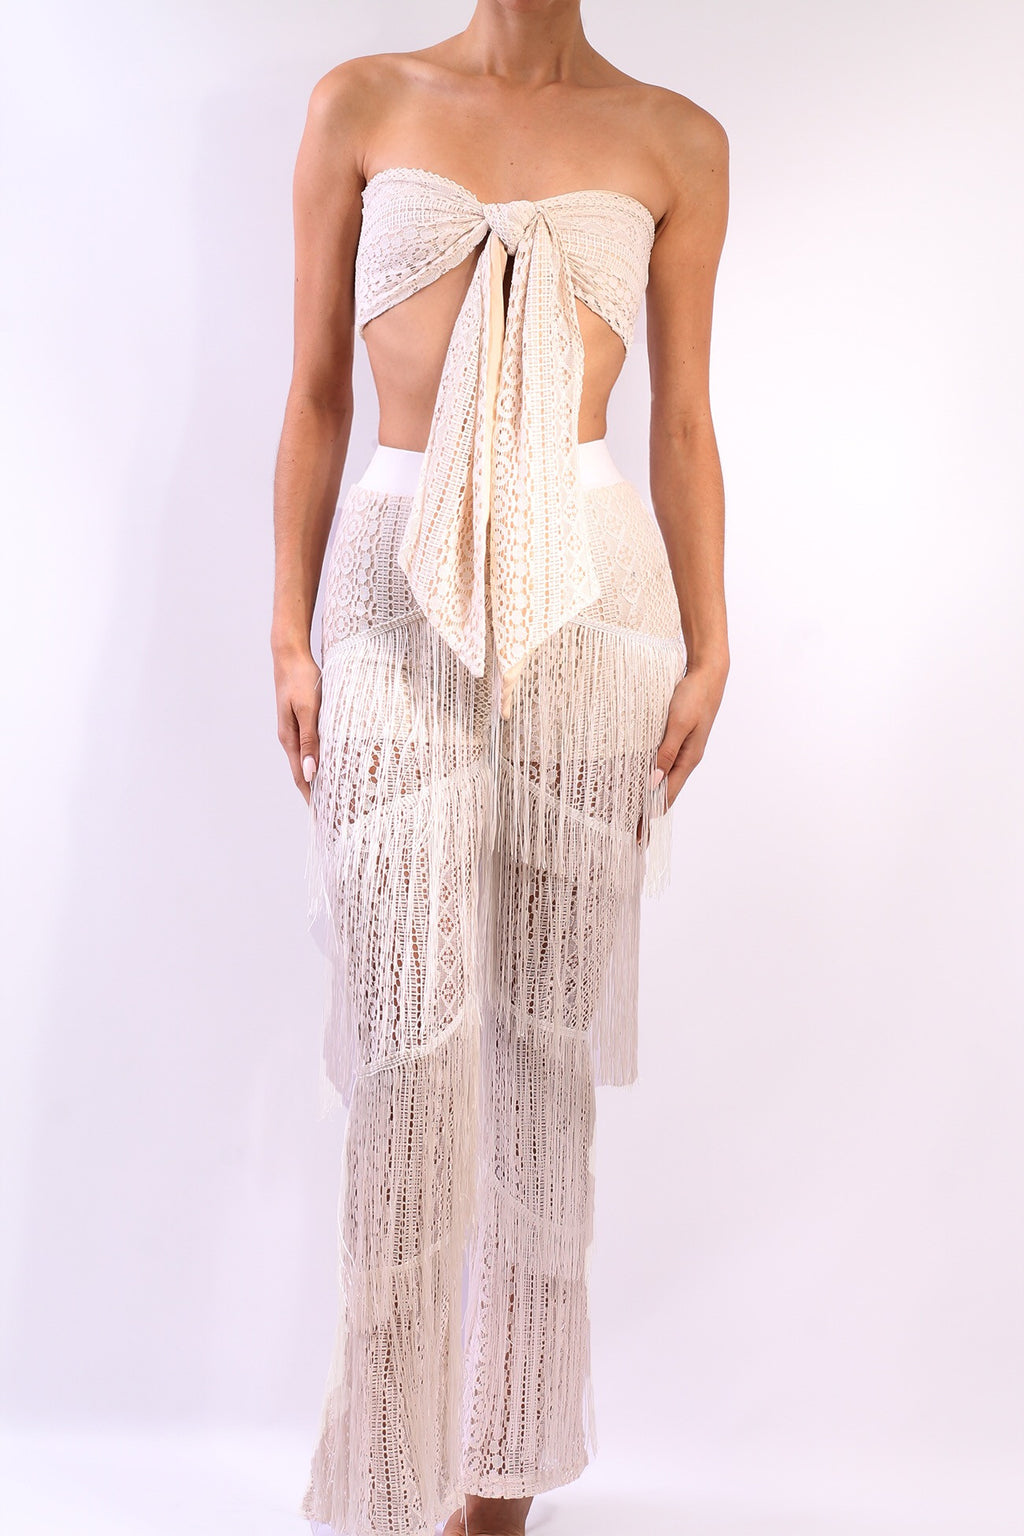 Sasha Fringe Resort Set